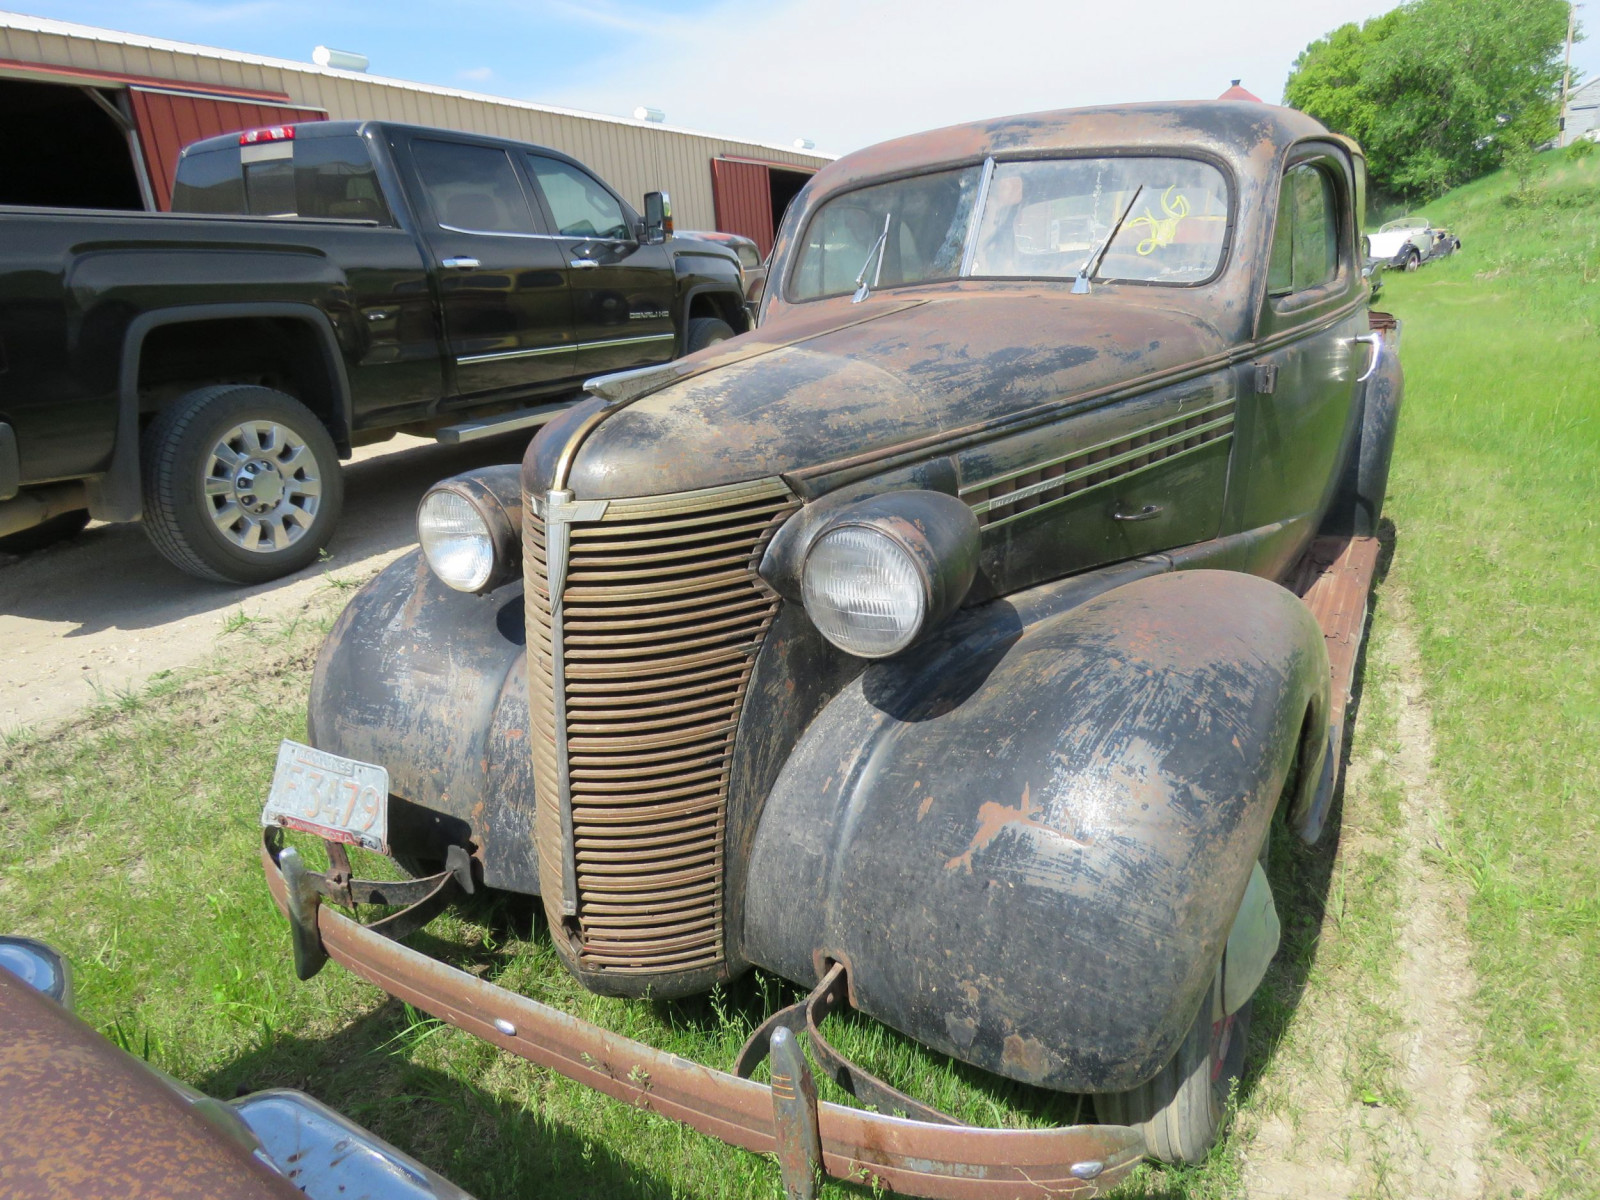 1938 Chevrolet Master Deluxe Coupe 21HA12 15228 - Image 2